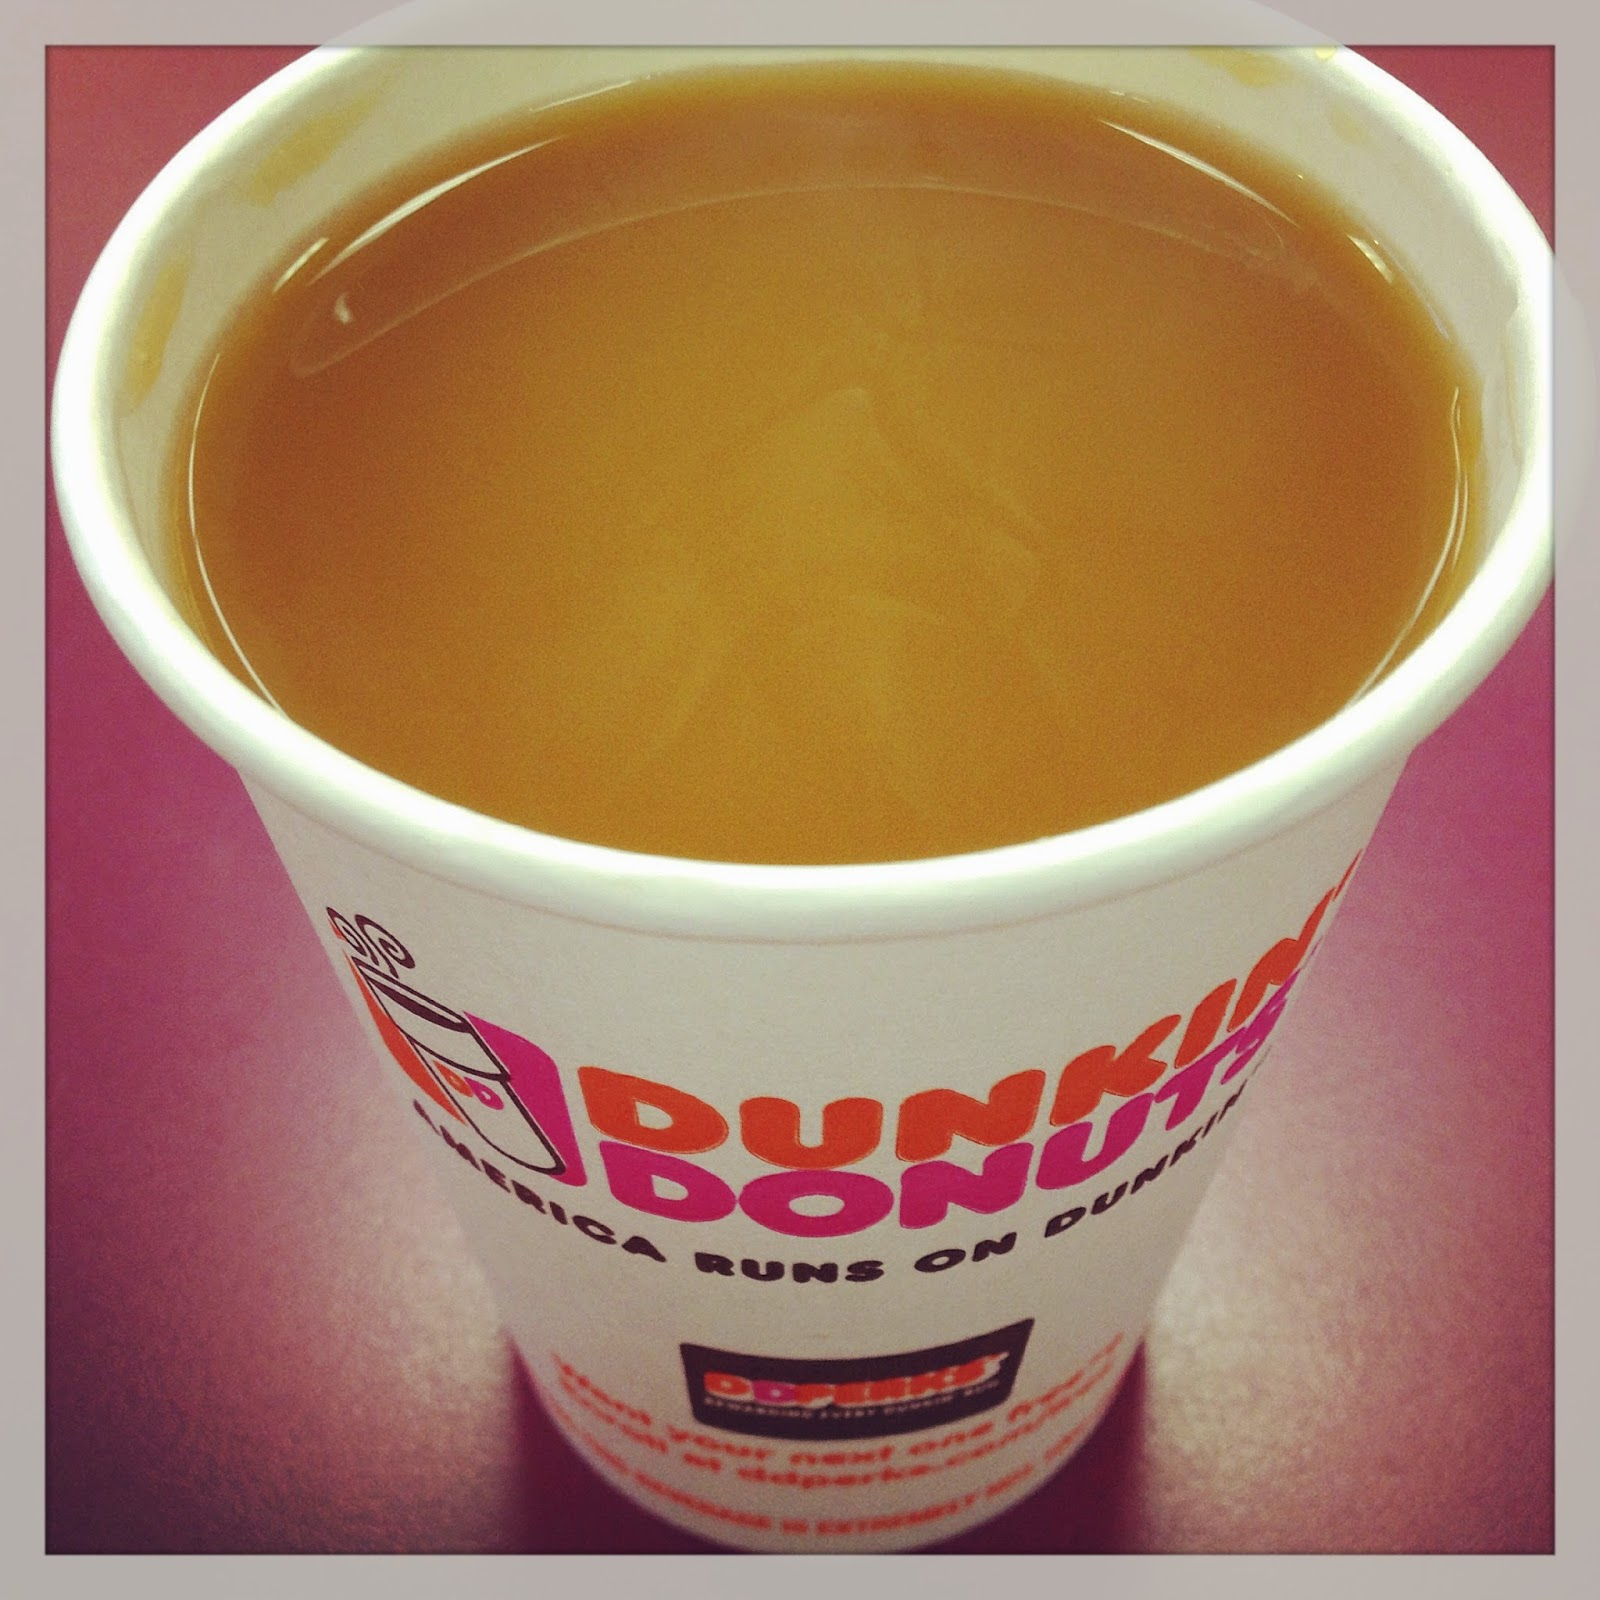 Vegan Dunkin Donuts Coffee with Almond Milk